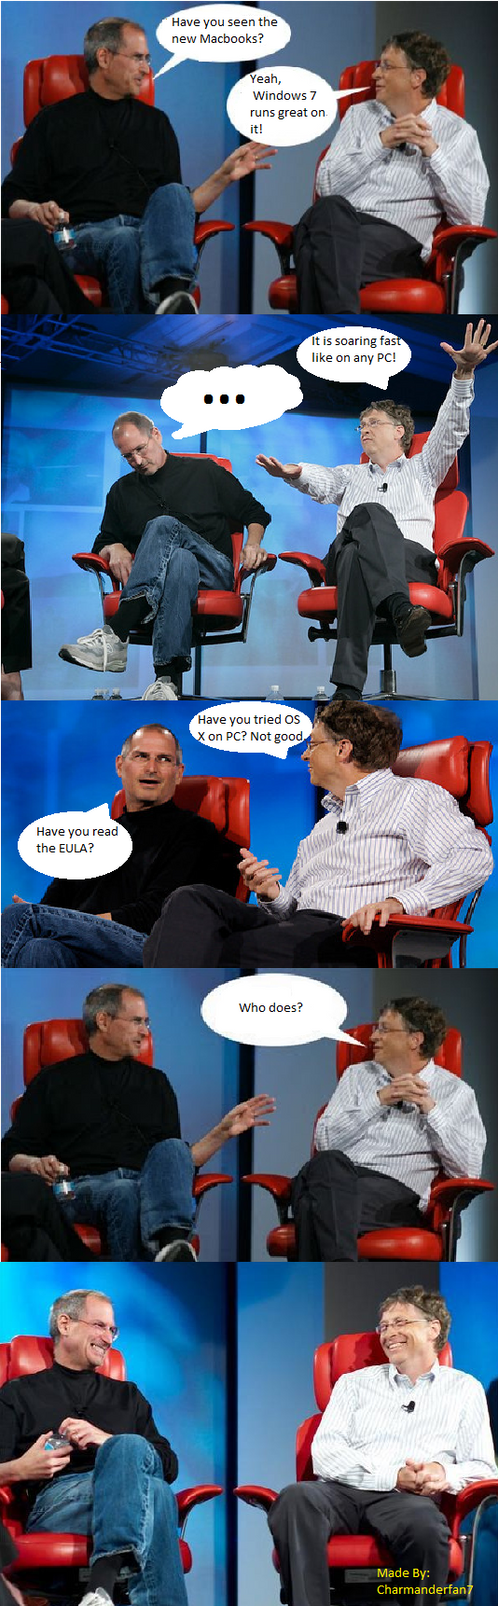 Bill Gates + Steve Jobs Comic by charmanderfan7